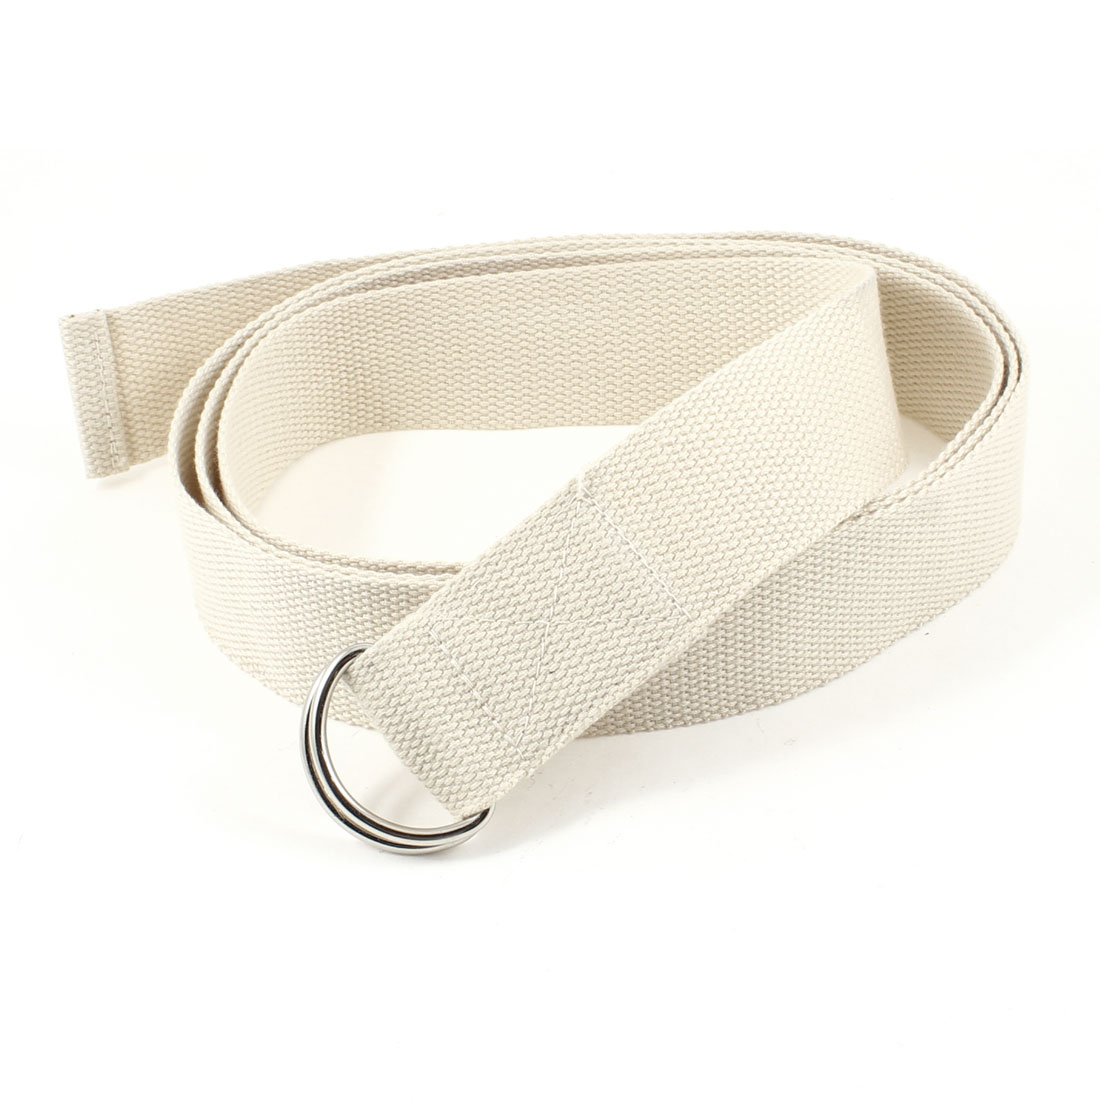 Dual D-Ring Design Yoga Stretch Strap Belt Beige 3.8cm Width for Ladies Woman